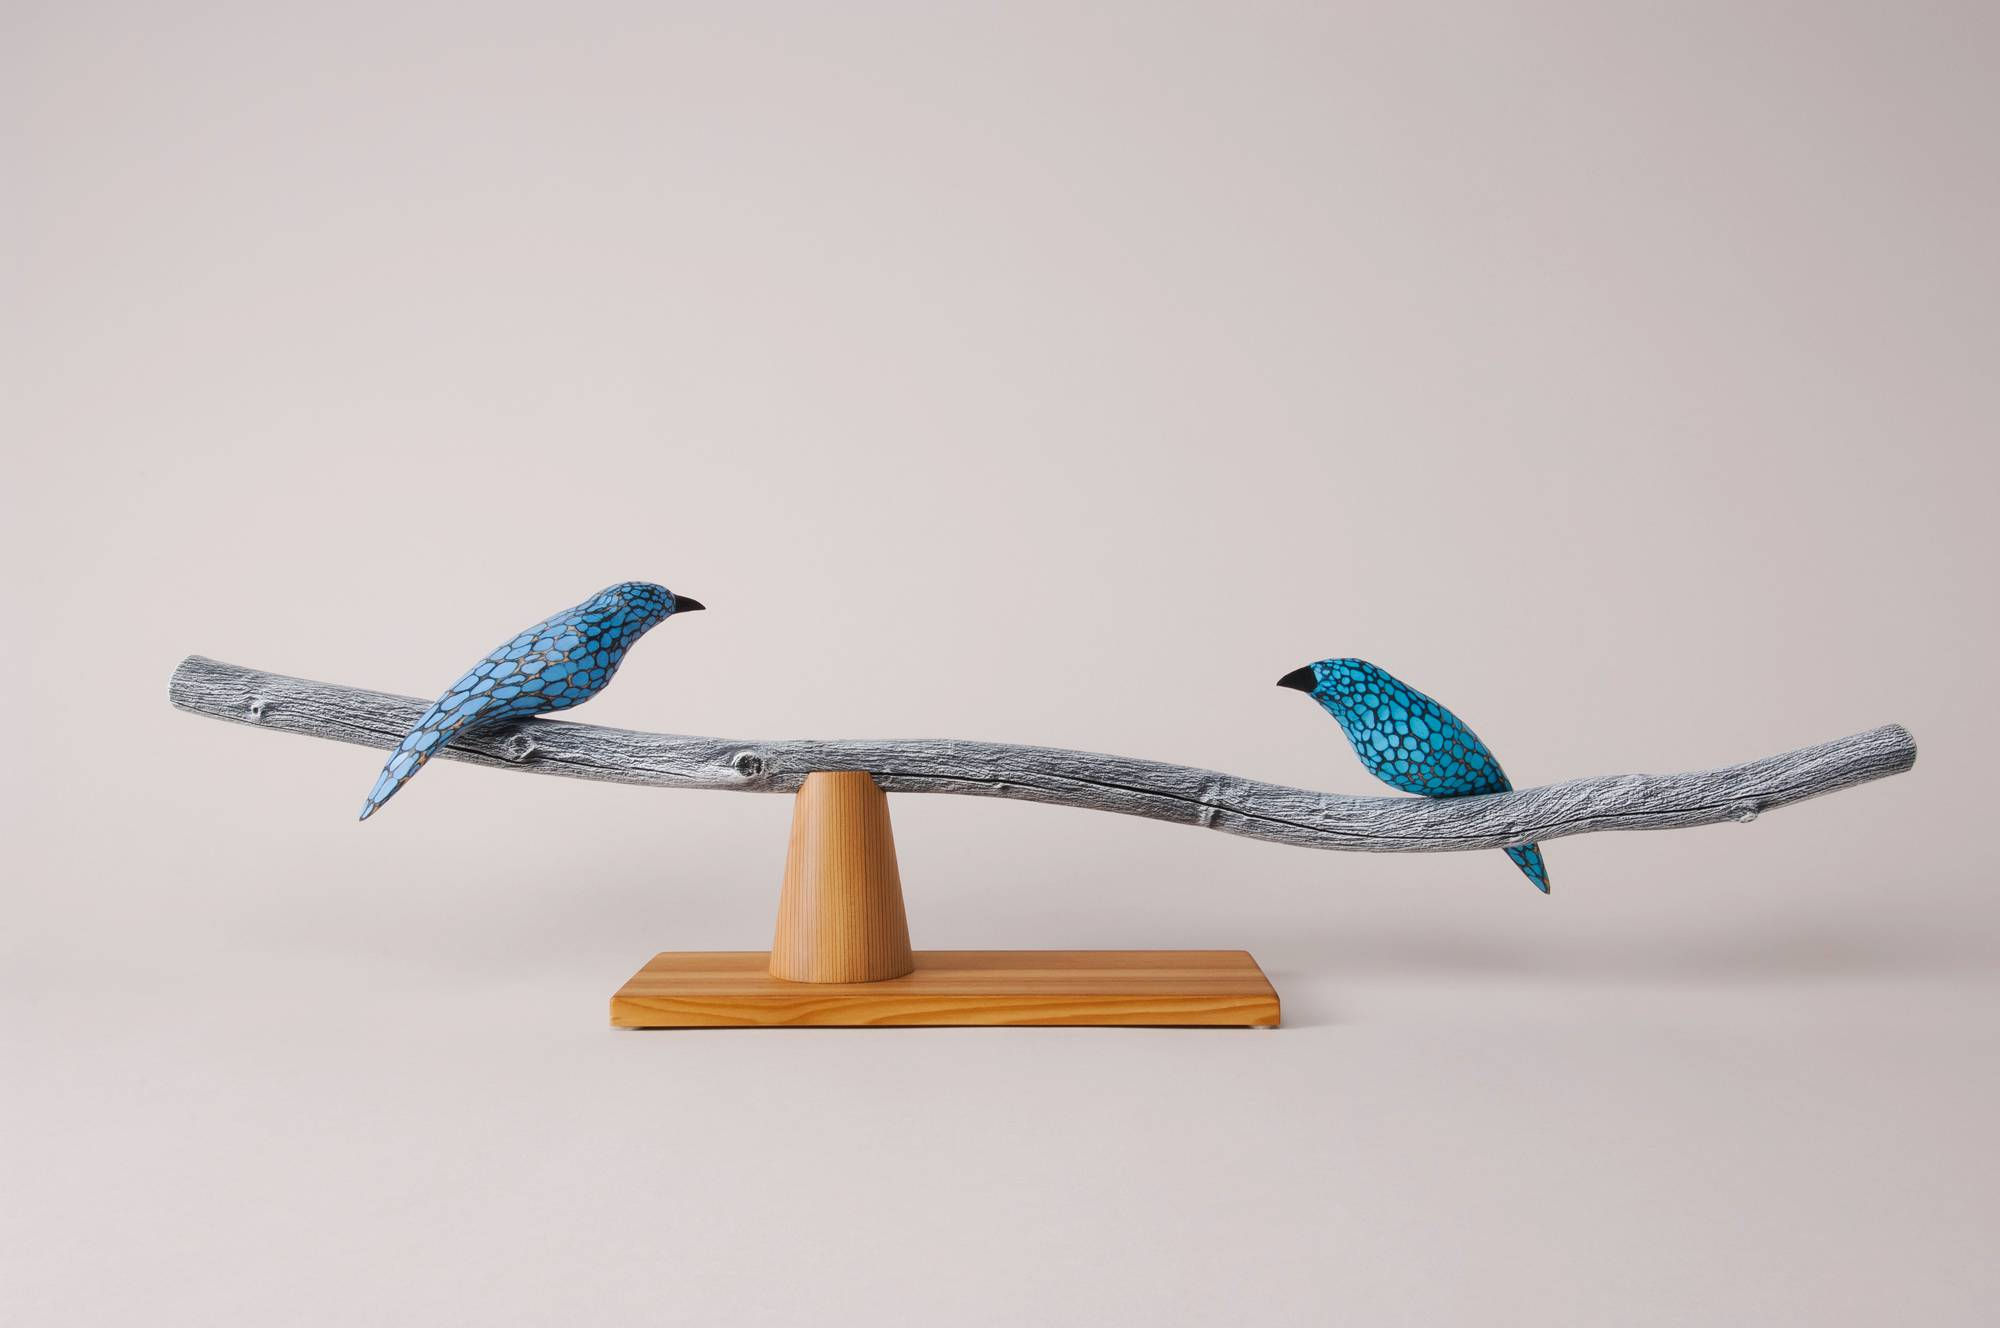 handcrafted sculpture blue wooden birds on branch